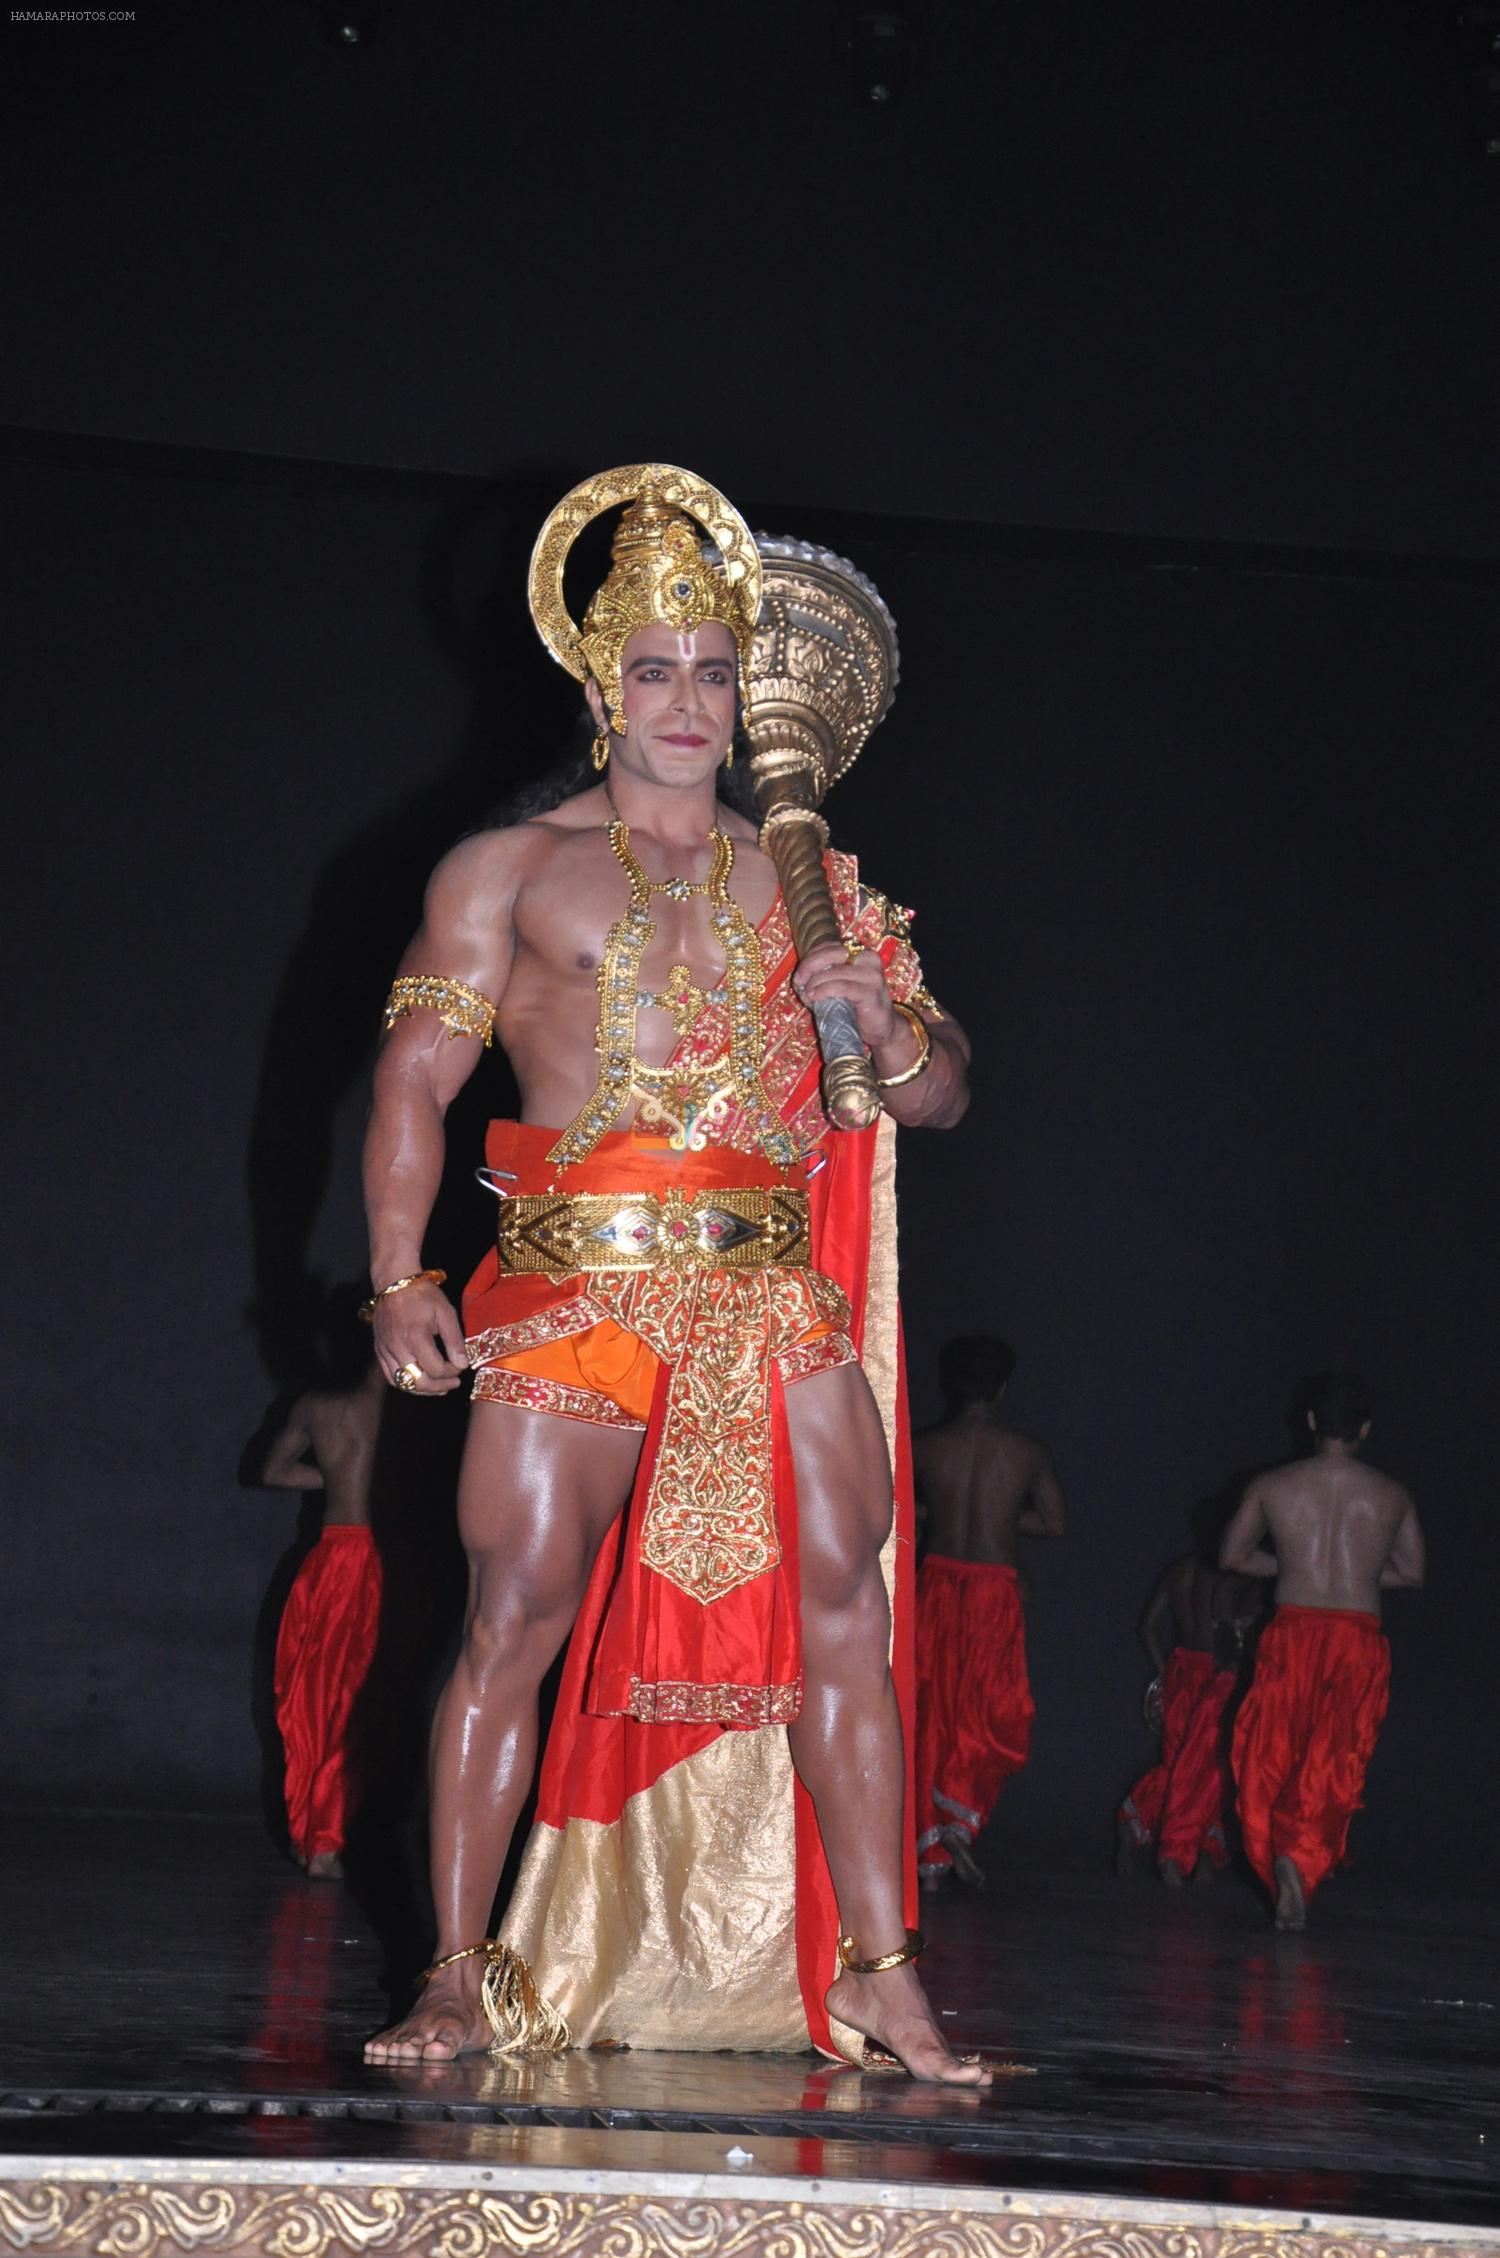 Nirbhay wadwa at the launch of sankat mochan mahabali hanuman nirbhay wadwa at the launch of sankat mochan mahabali hanuman publicscrutiny Image collections